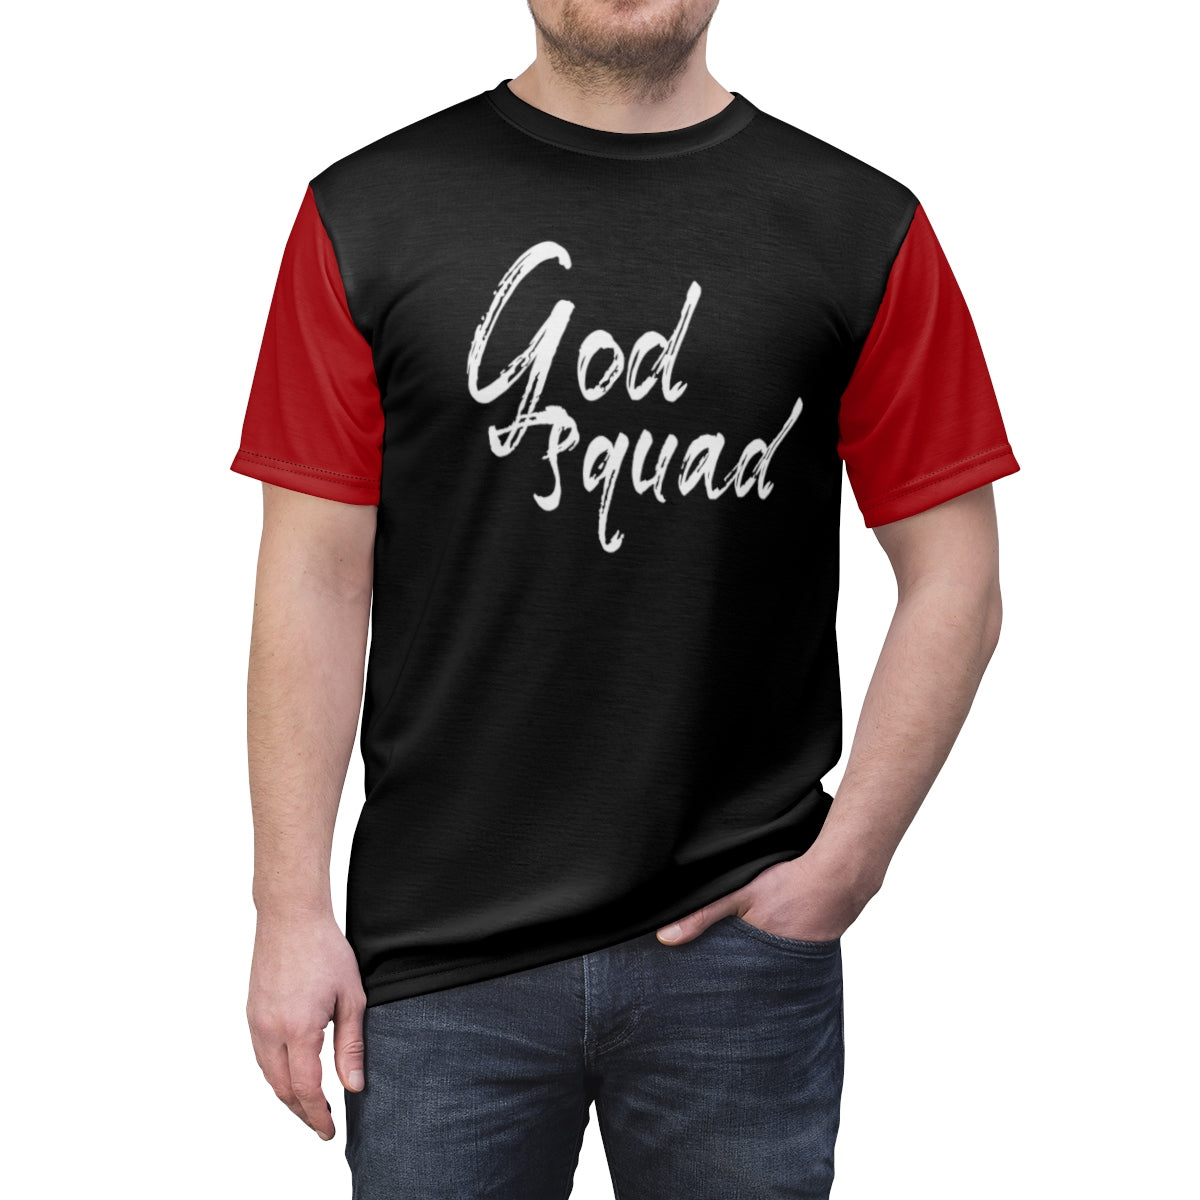 God Squad Bold Expressive Unisex T-Shirt, AOP Cut & Sew Tee - skyrockettees